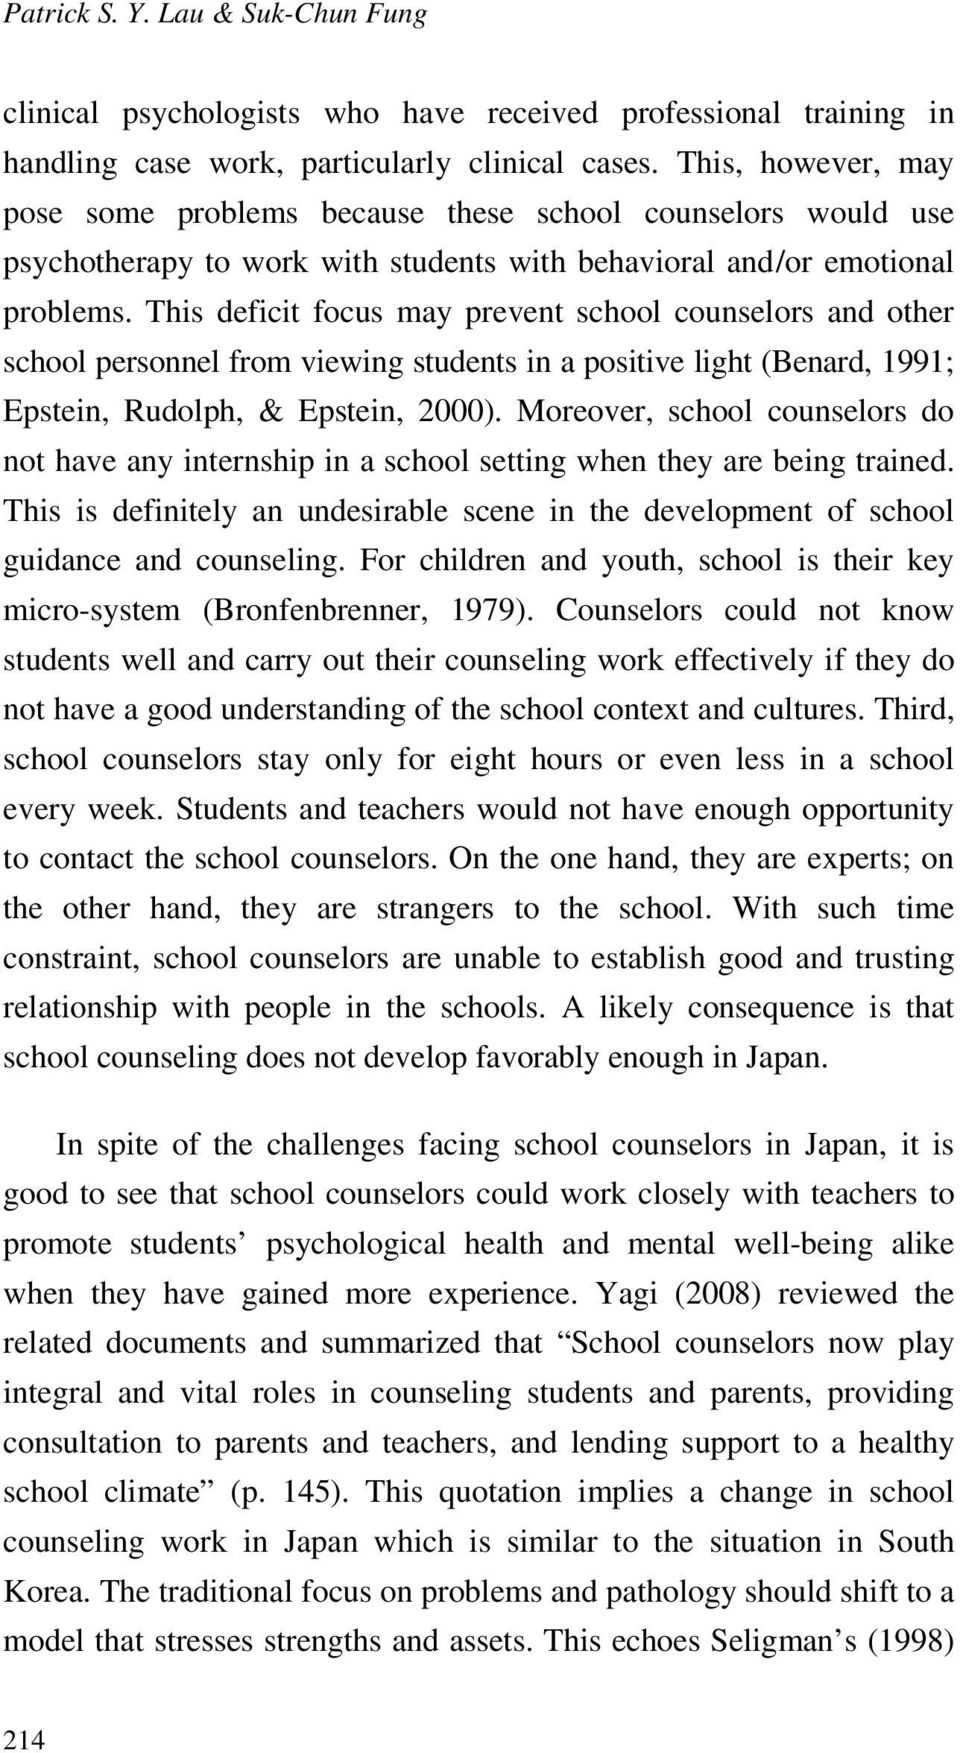 This deficit focus may prevent school counselors and other school personnel from viewing students in a positive light (Benard, 1991; Epstein, Rudolph, & Epstein, 2000).